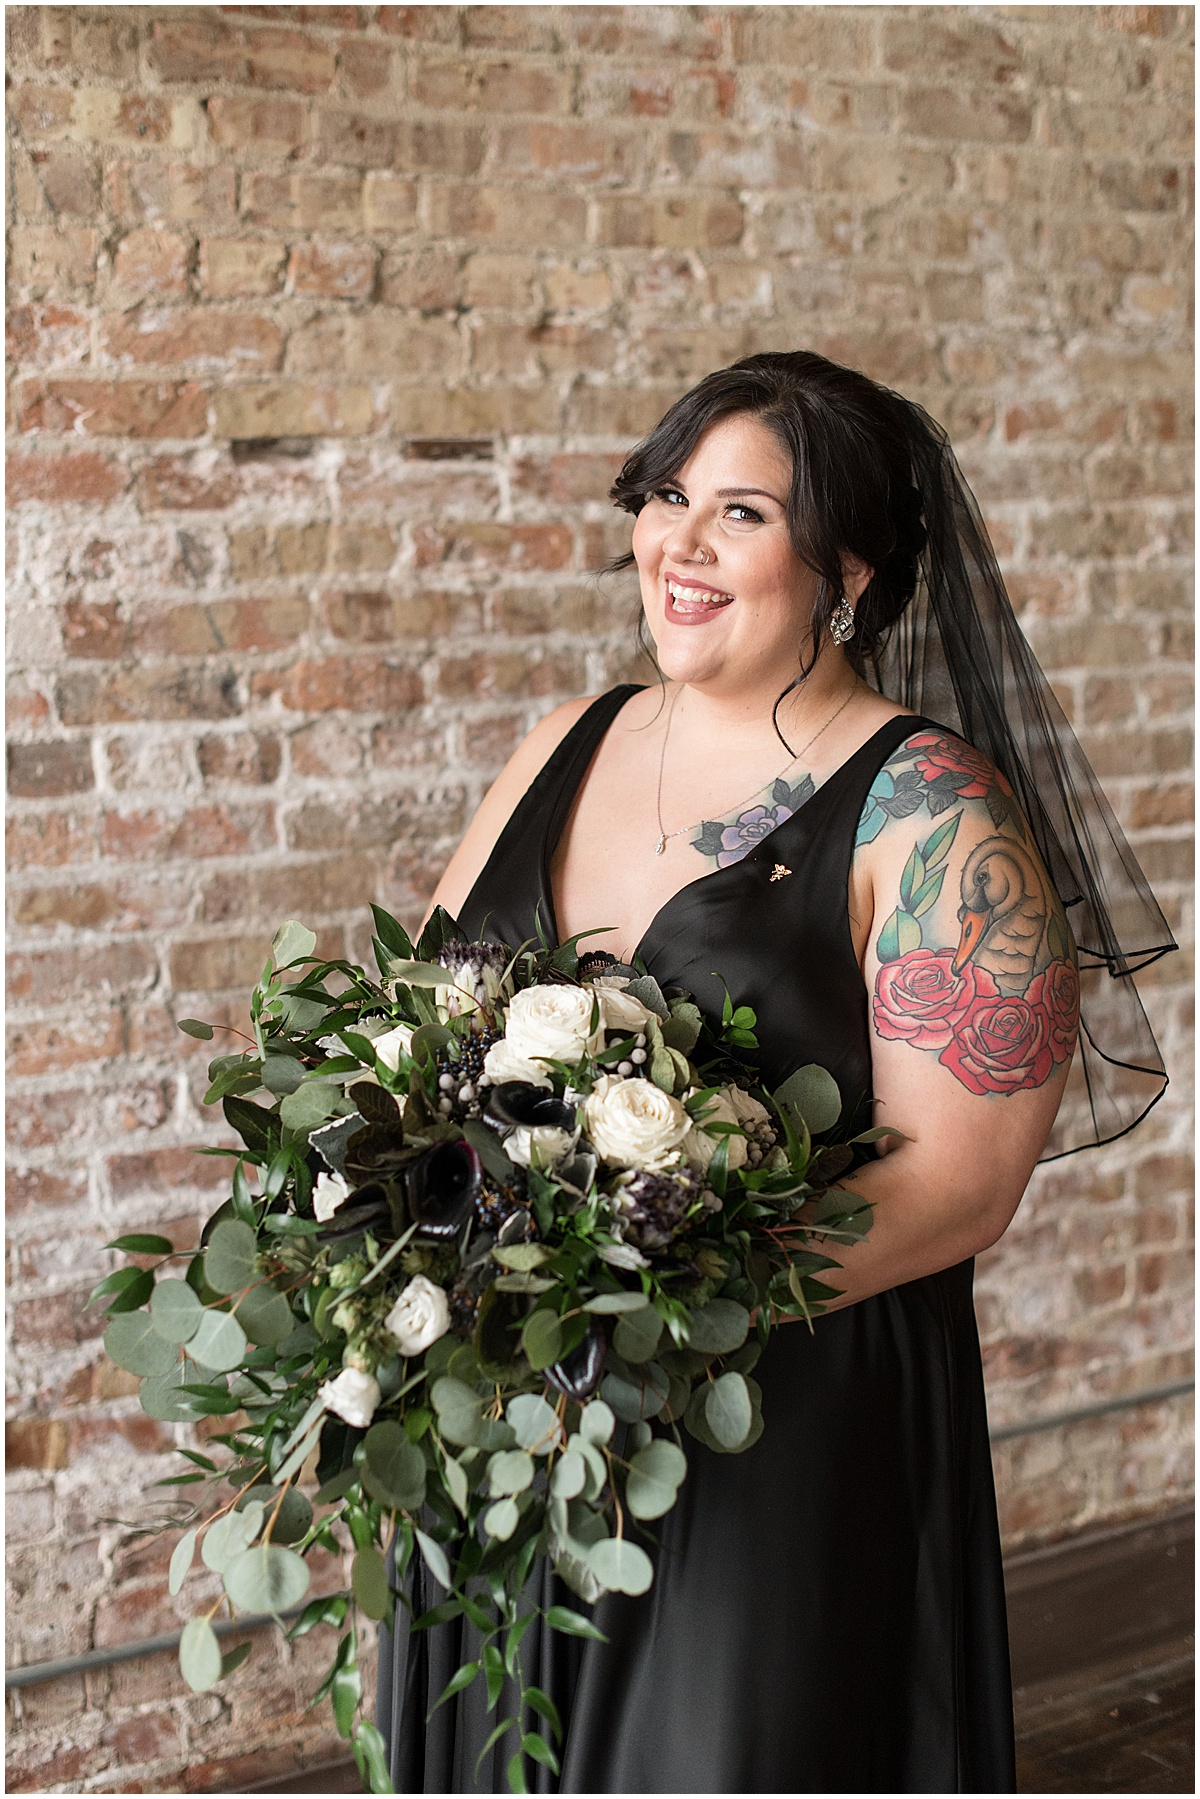 Bride wearing black wedding dress and veil for eMbers Venue wedding